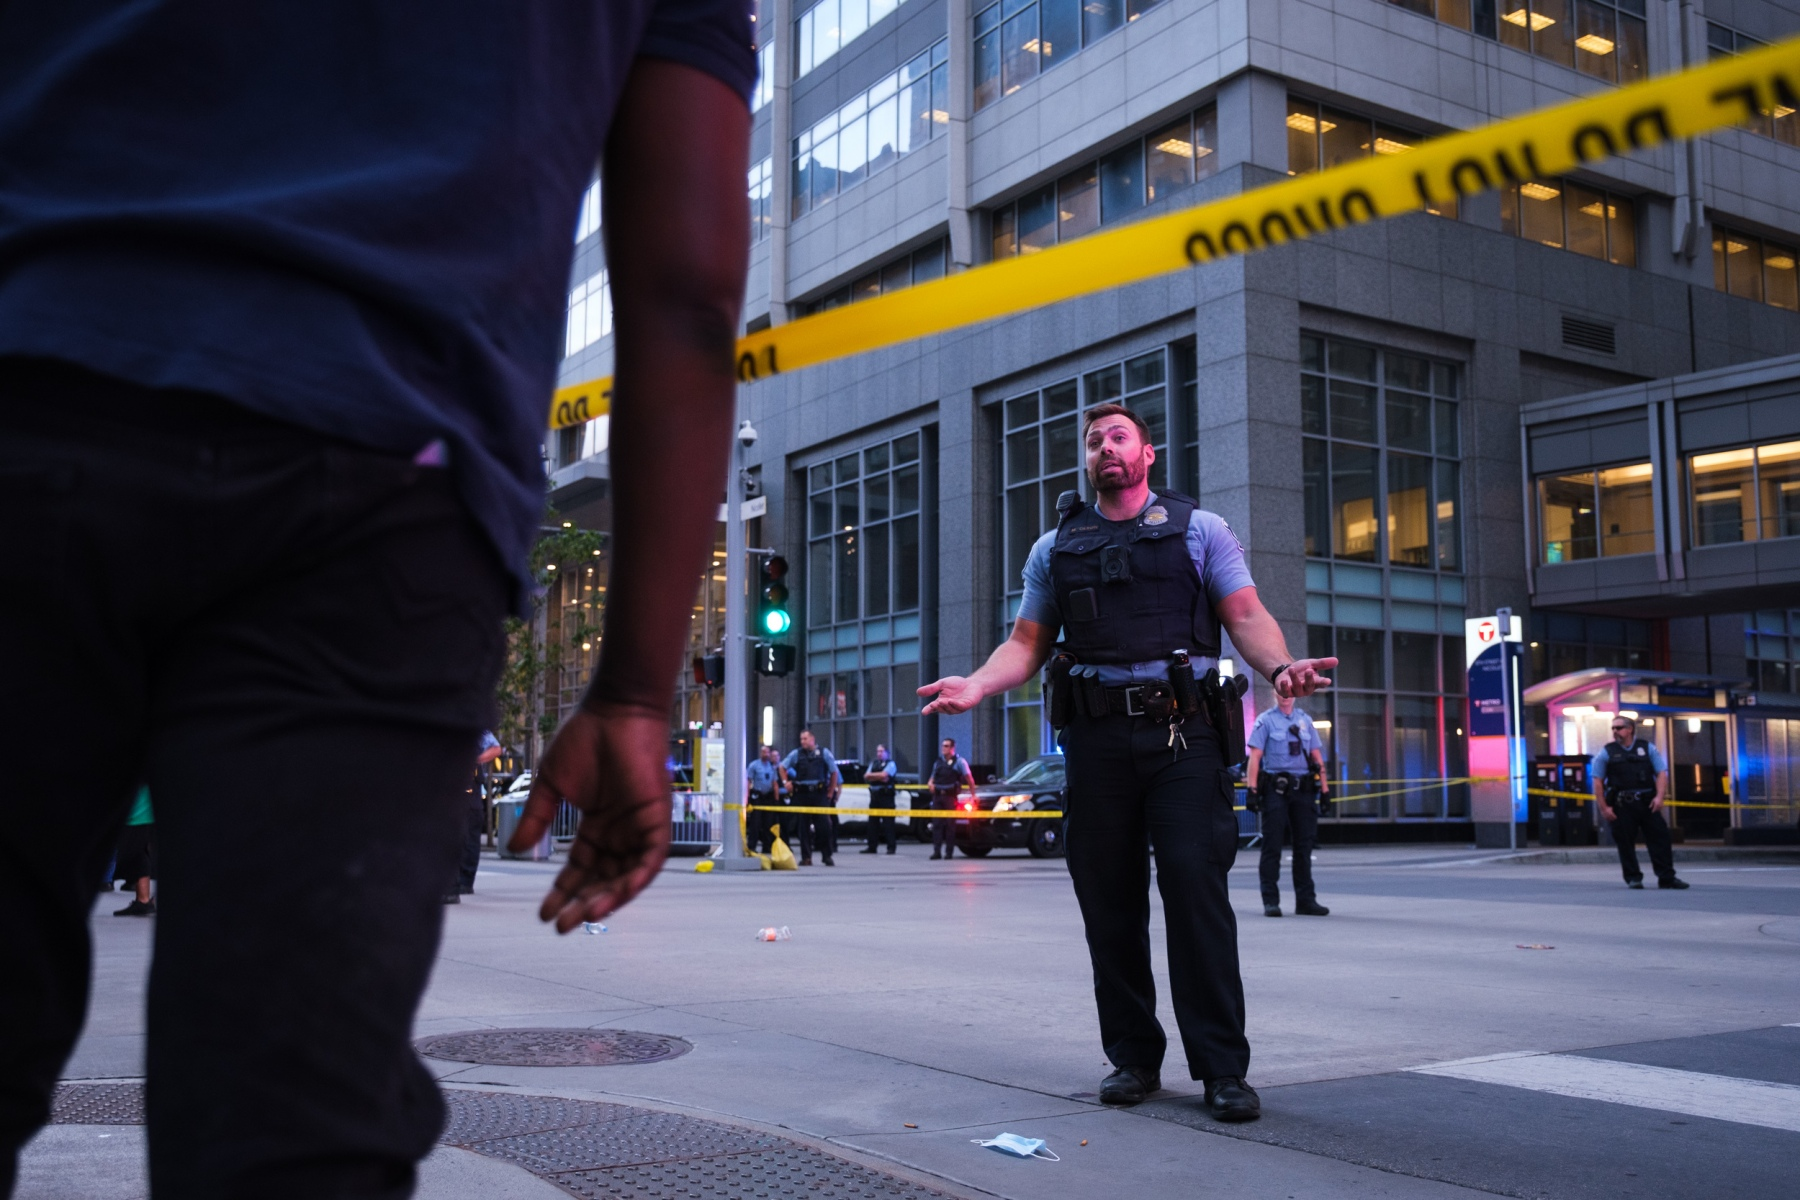 A Minneapolis police officer speaks to a bystander as police cordon off the area of Nicollet Mall near the shooting on August 26, 2020.